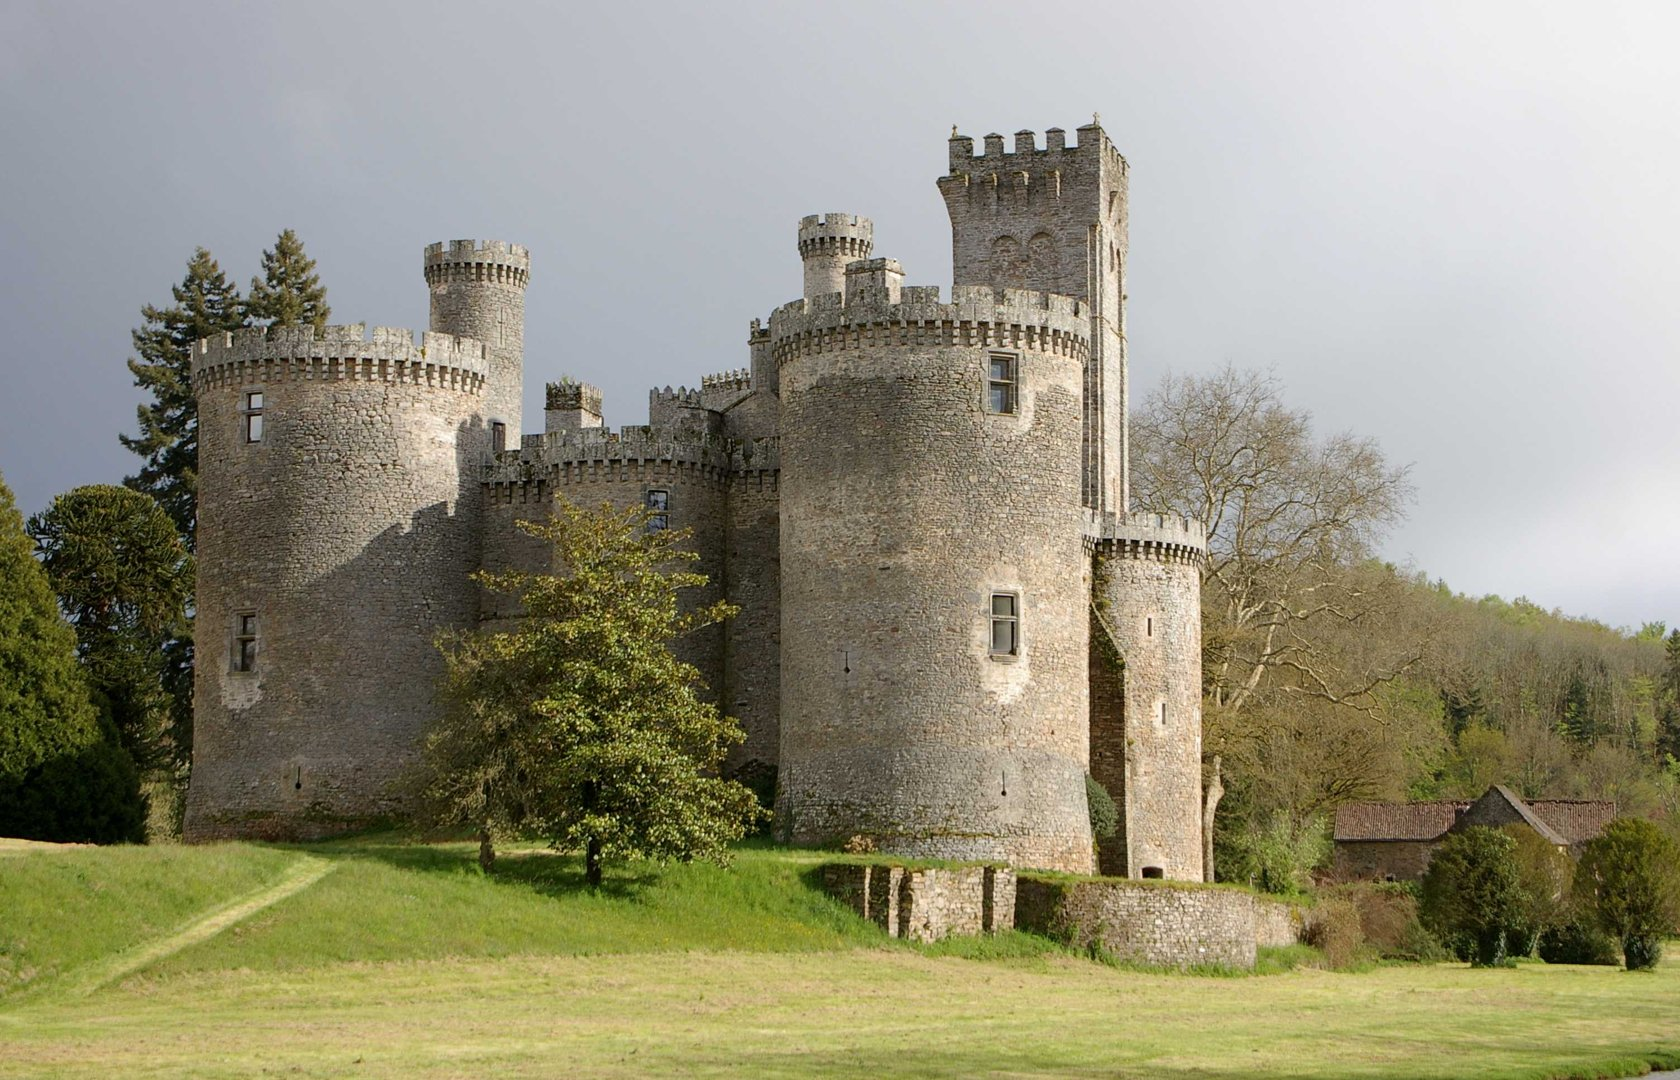 Chateaux Forts - Histoire Moyen Age | Pearltrees